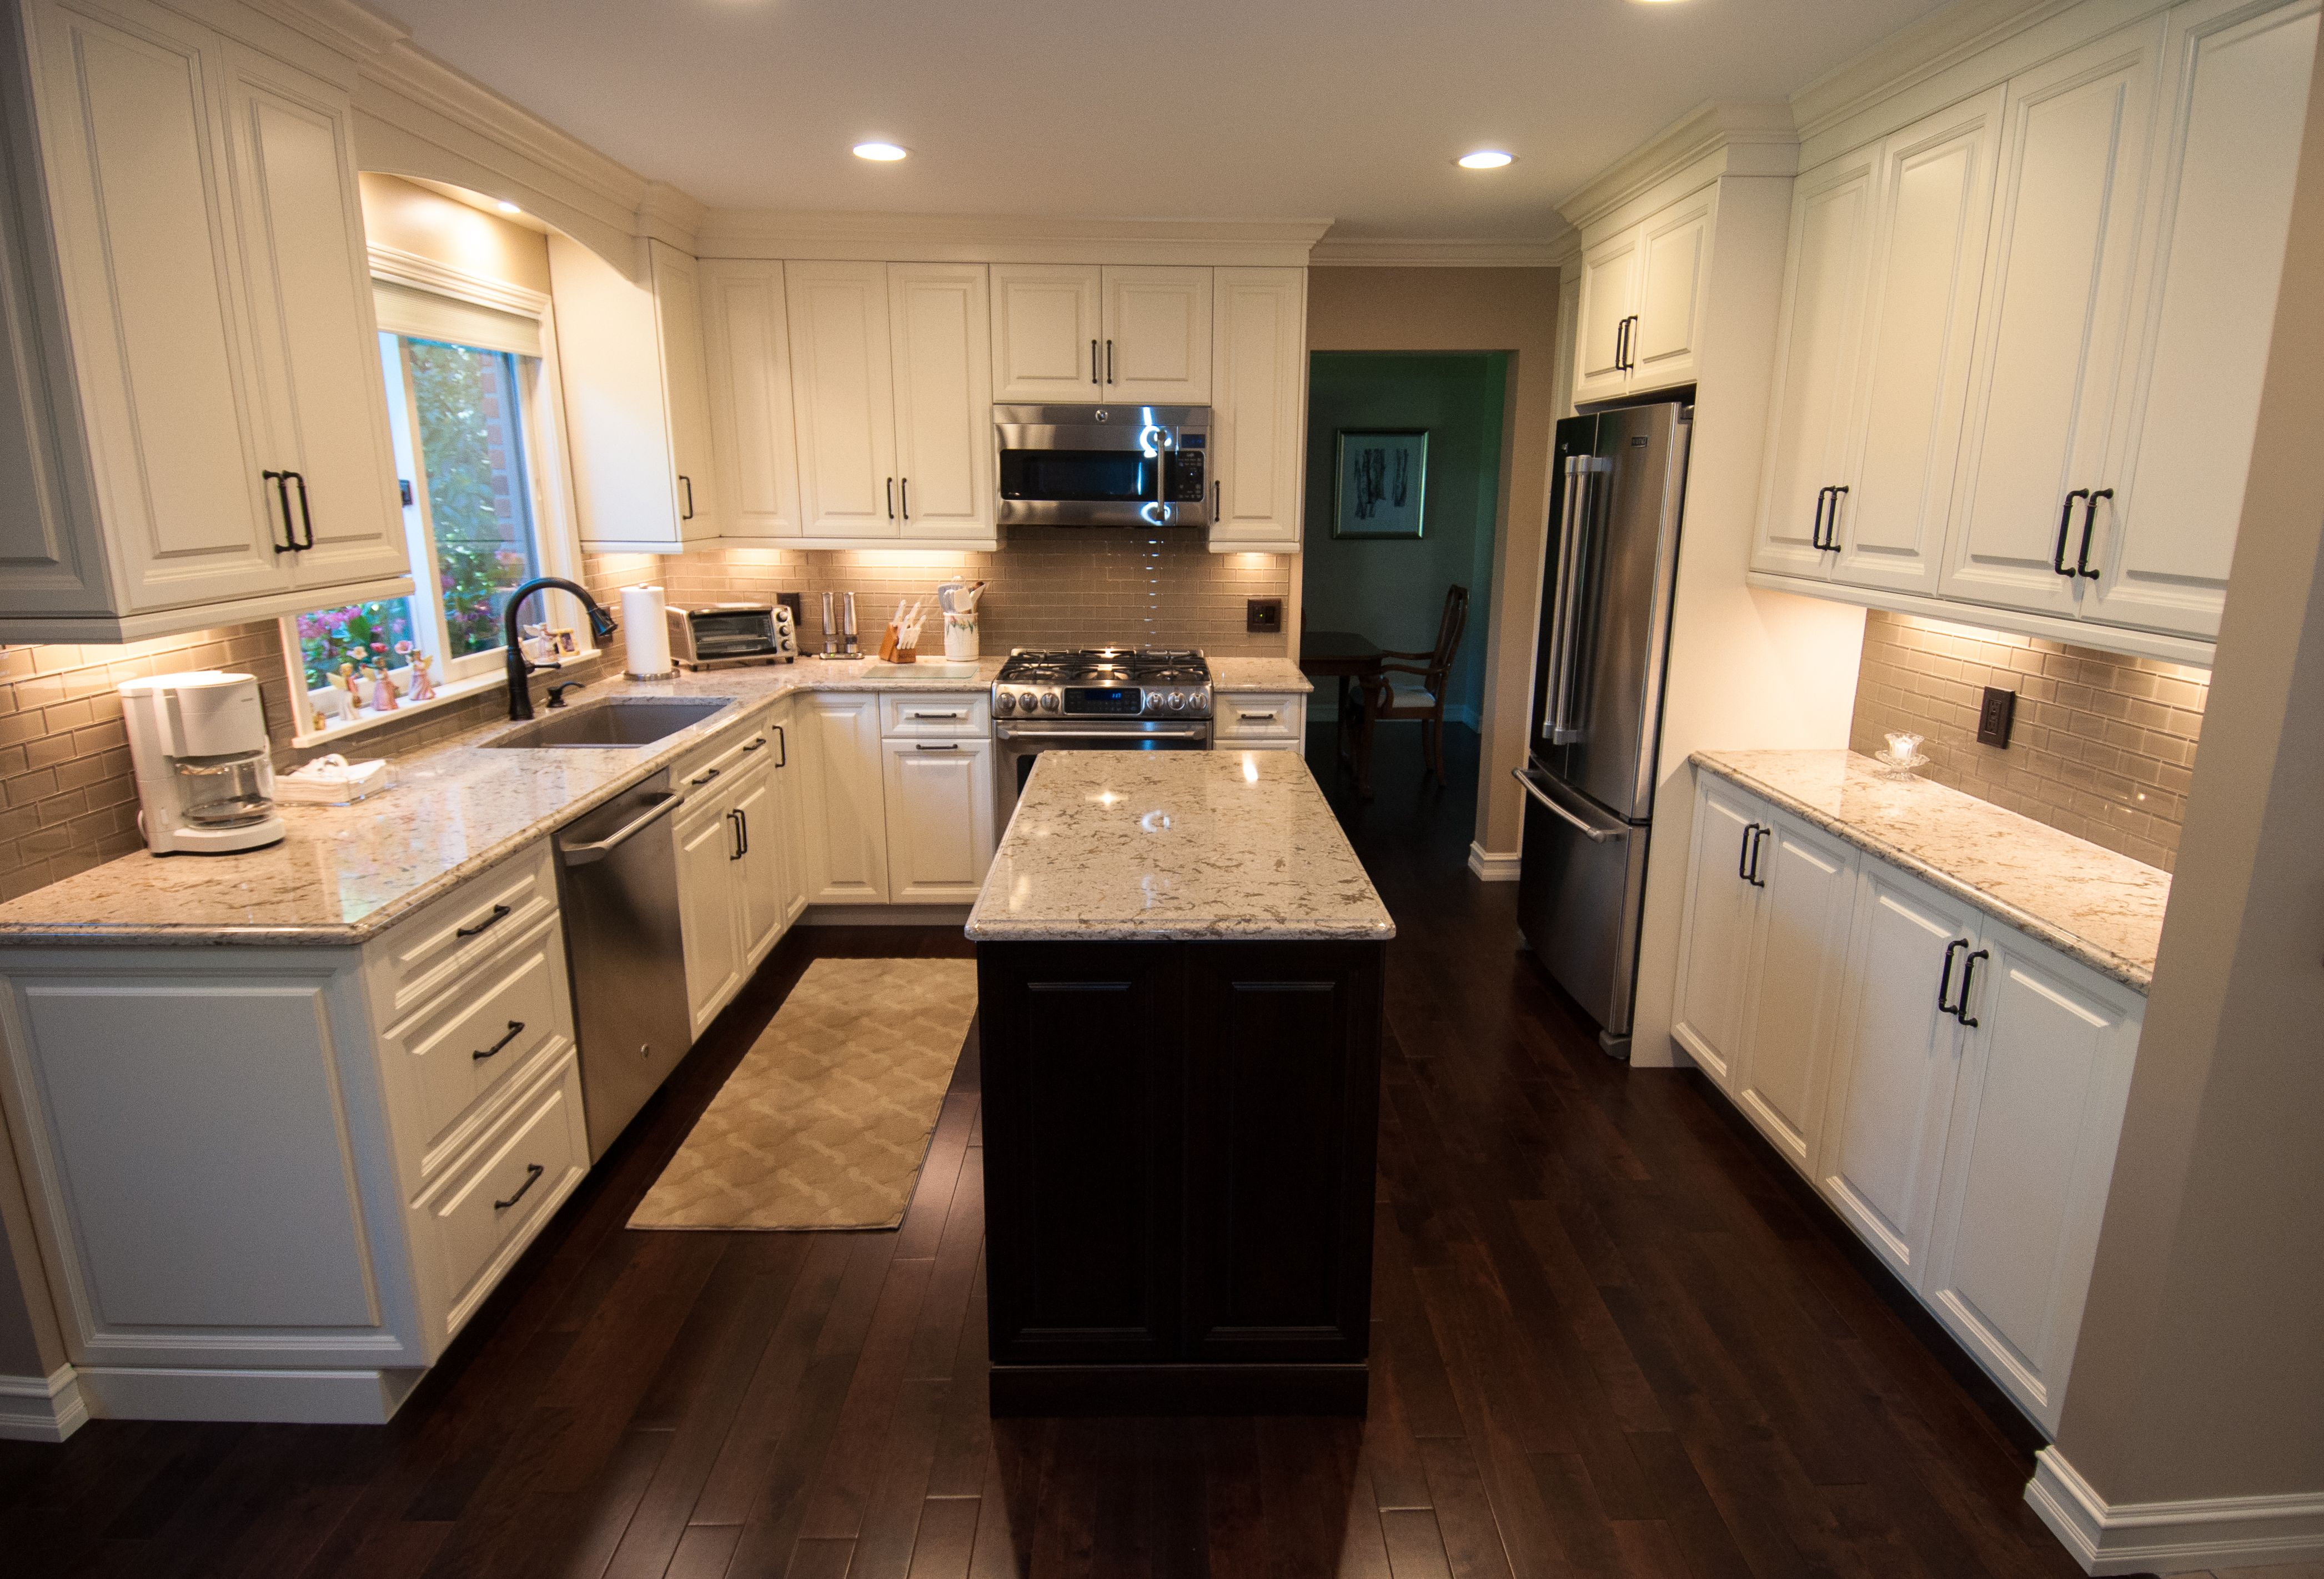 An Incredible Kitchen Fully Remodeled By Lafata Cabinets The Island Cabinets Used Doors Of Saratoga In Cherry With A Custom Finish For The Island And Sar Mutfak